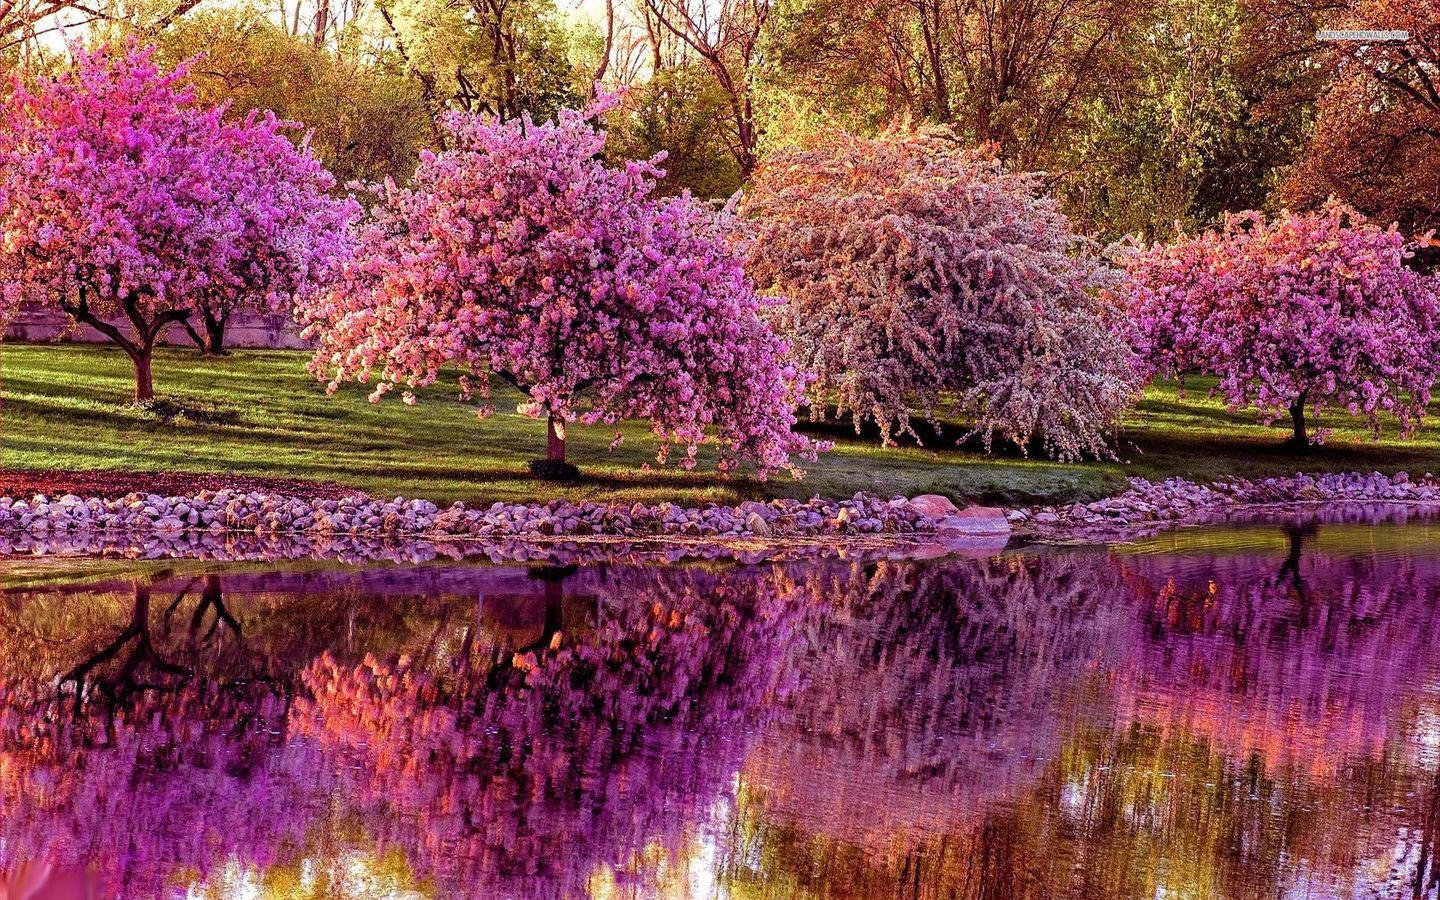 April spring backgrounds free library Spring Wallpaper - Android Apps on Google Play free library